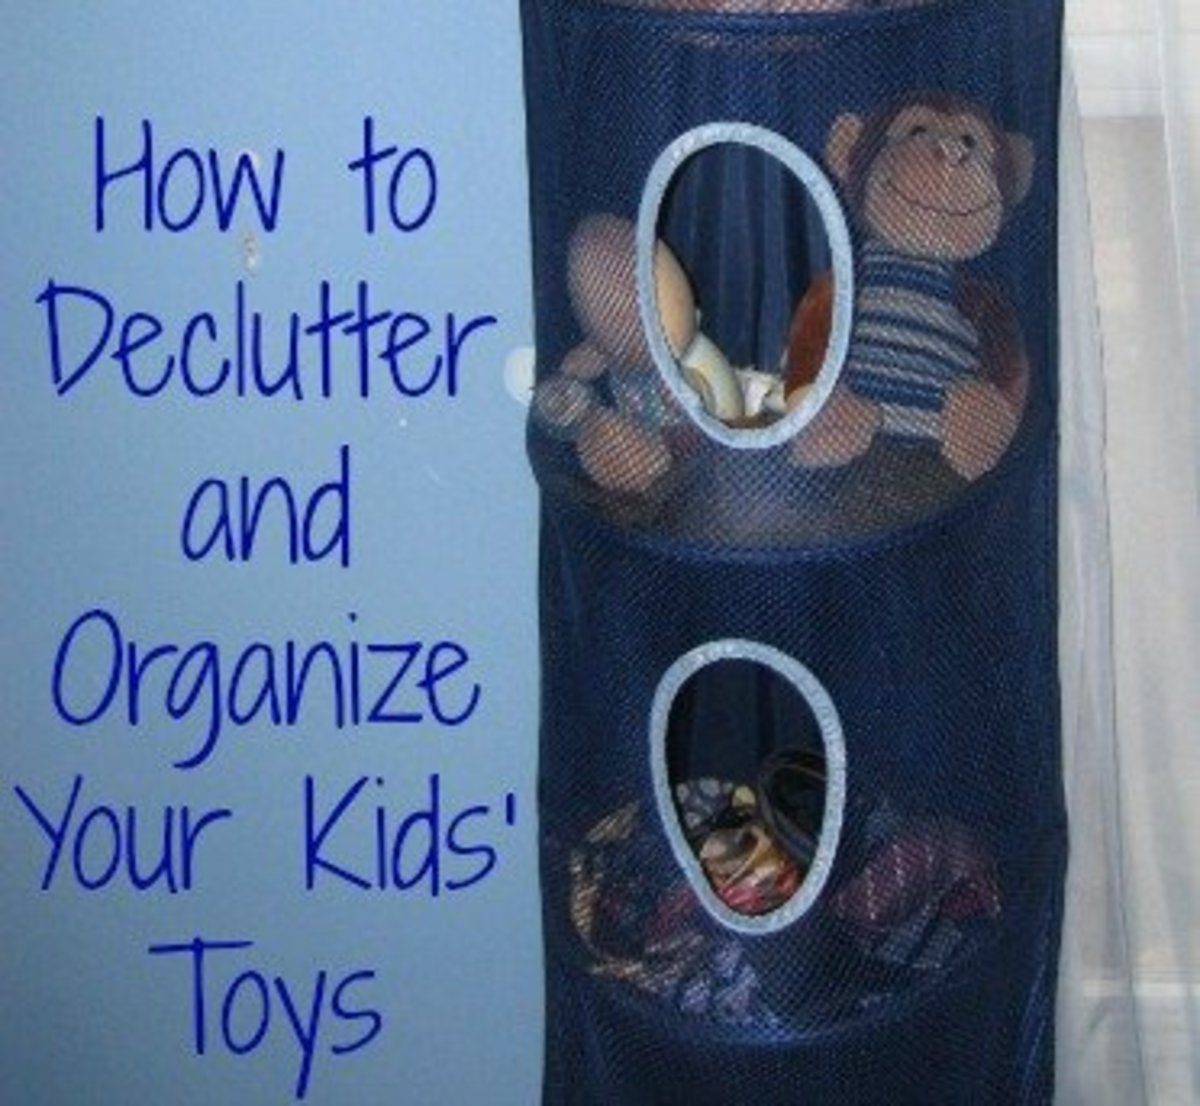 How to Declutter Your Home: Tips for Decluttering and Organizing Toys & Kids' Playthings